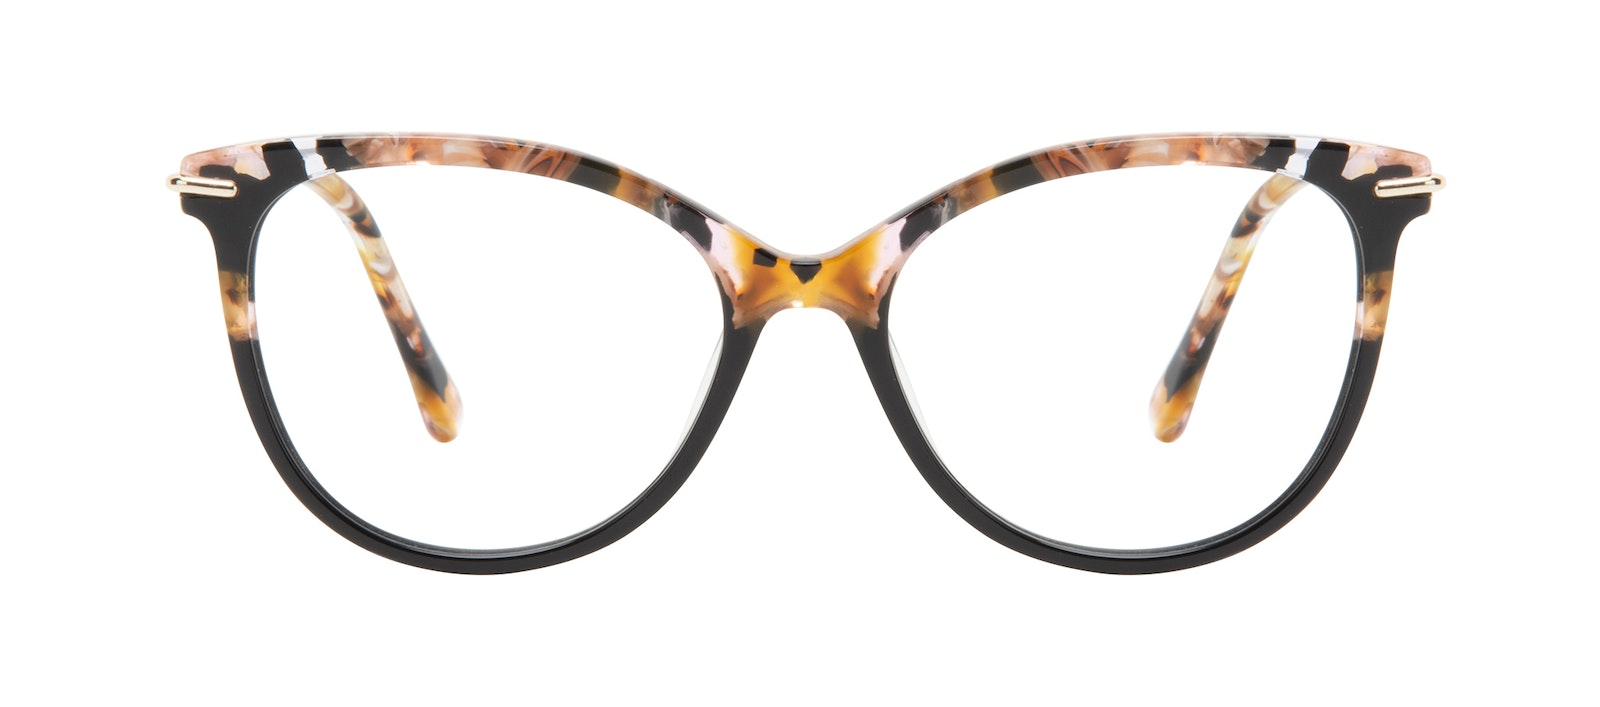 Affordable Fashion Glasses Round Eyeglasses Women Sublime Black Flake Front